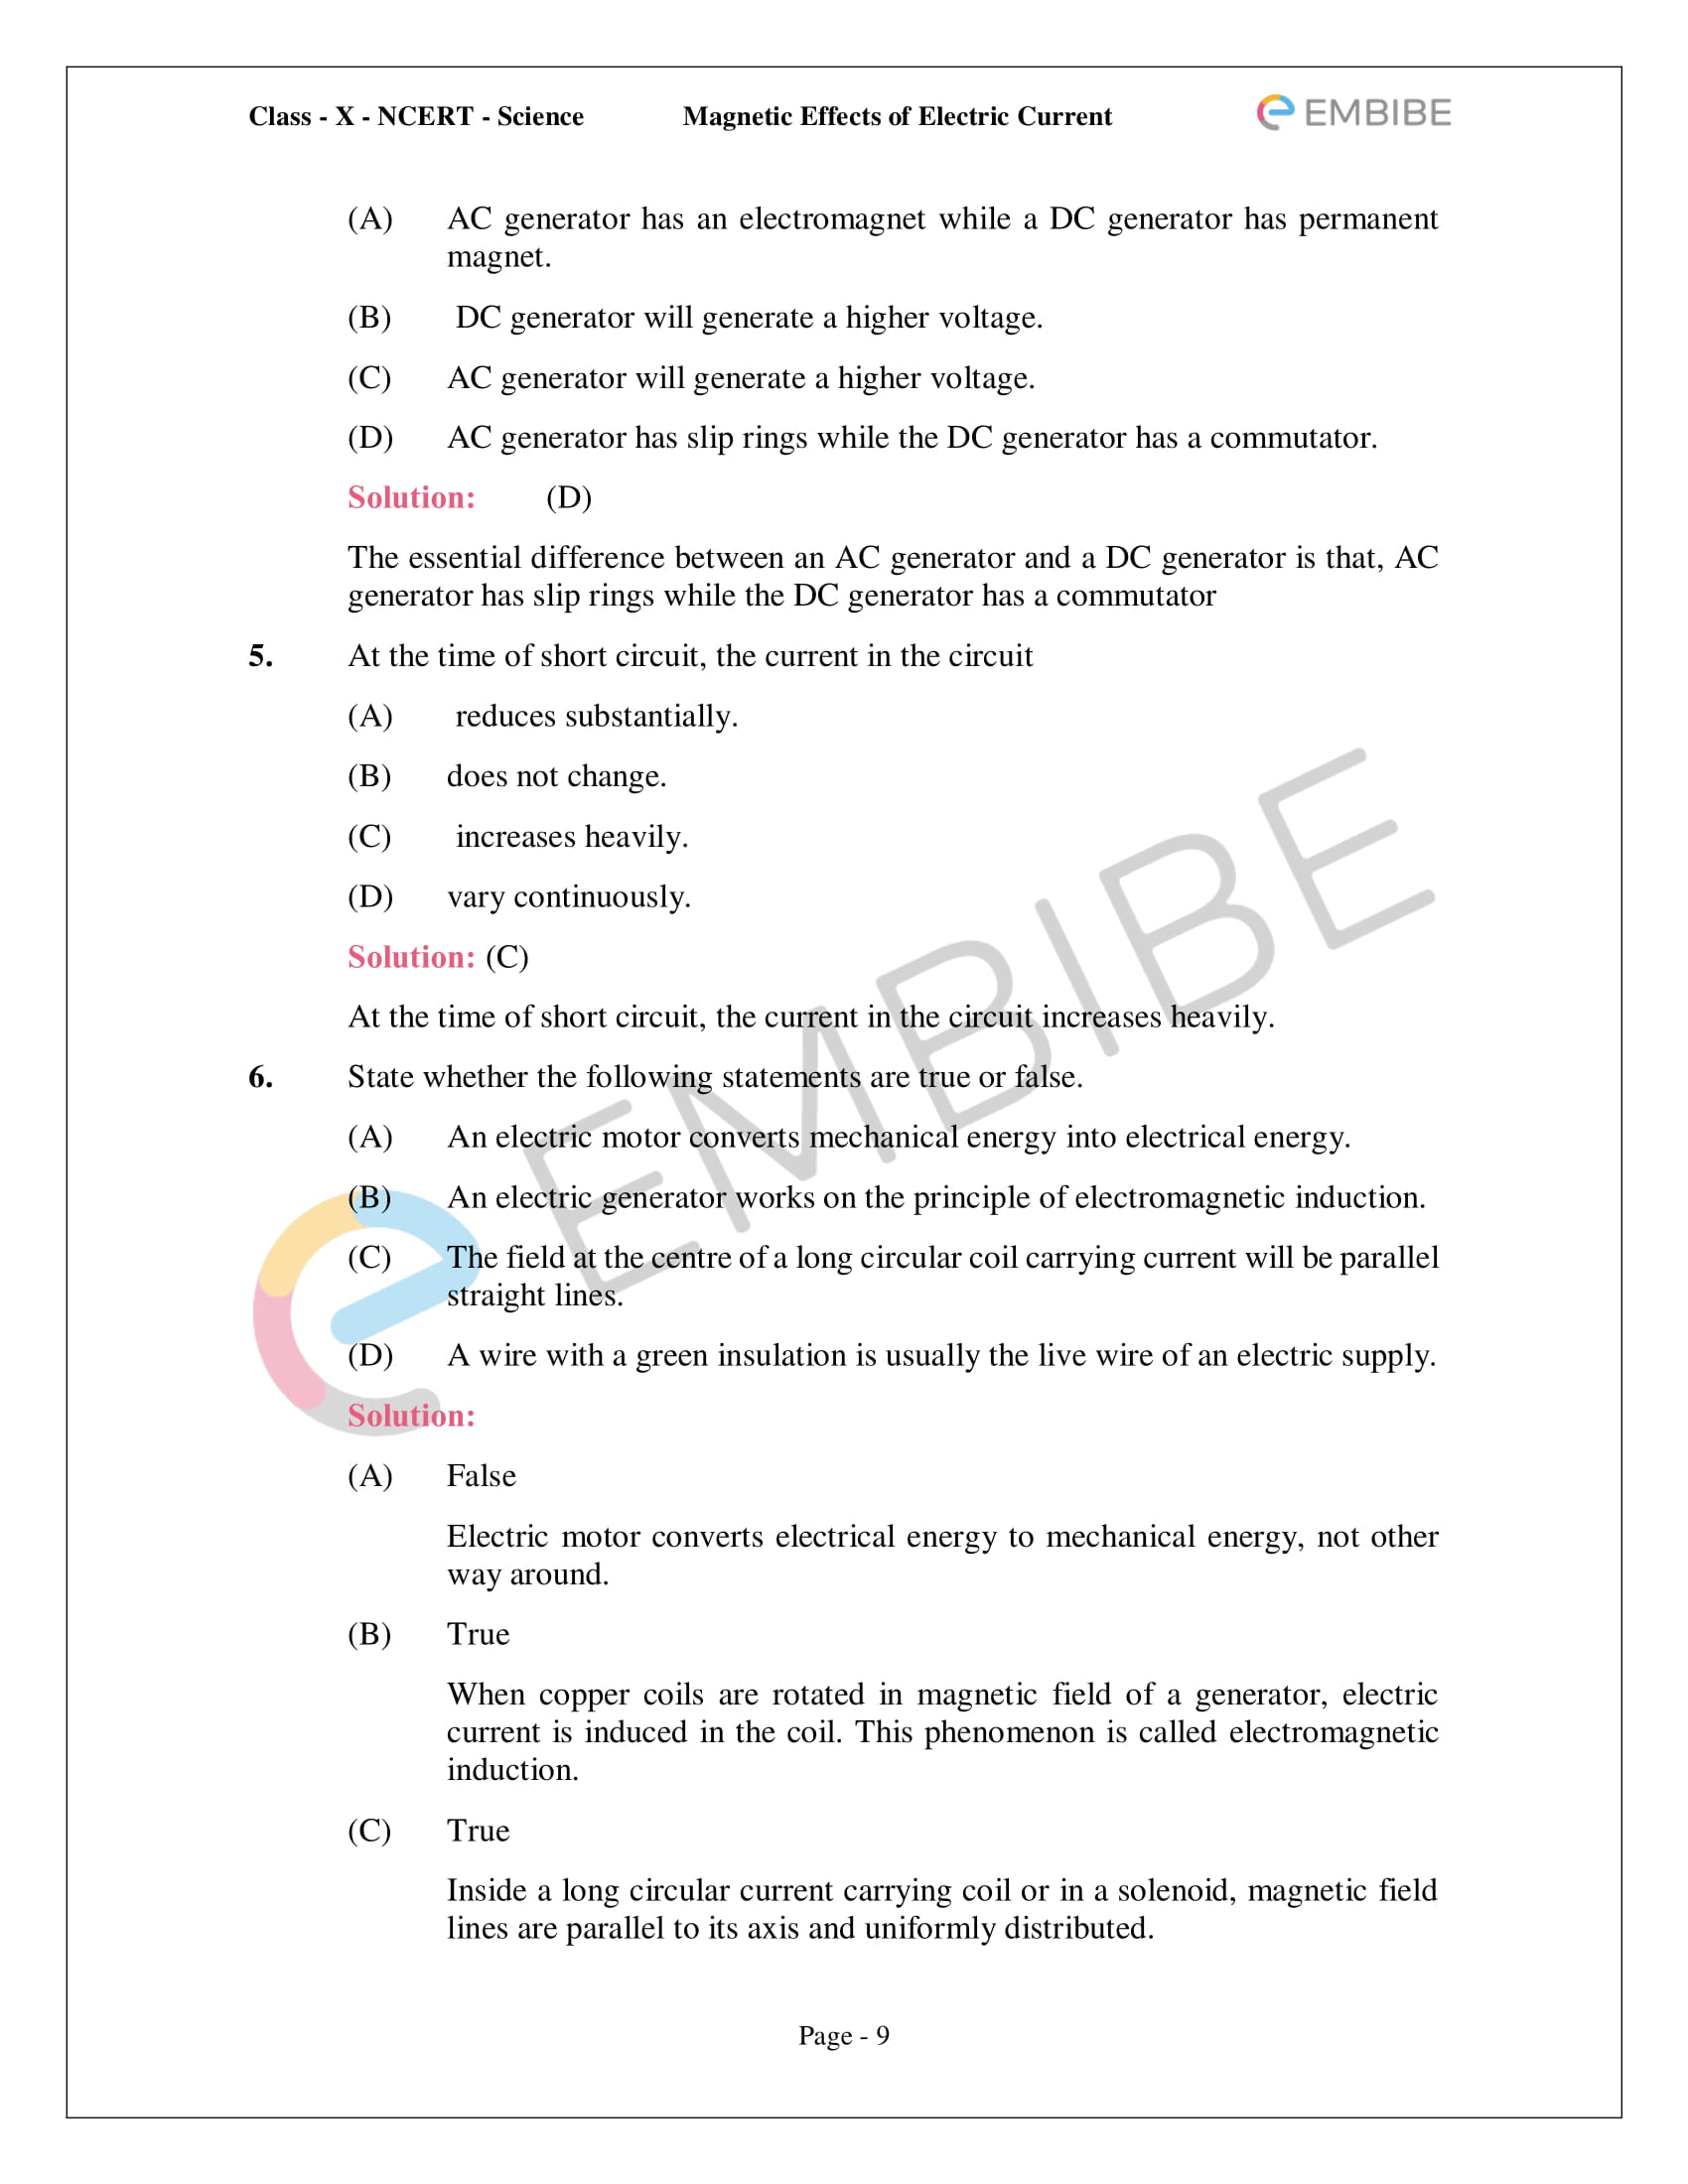 CBSE NCERT Solutions For Class 10 Science Chapter 13 - Magnetic Effects of Electric Current - 9